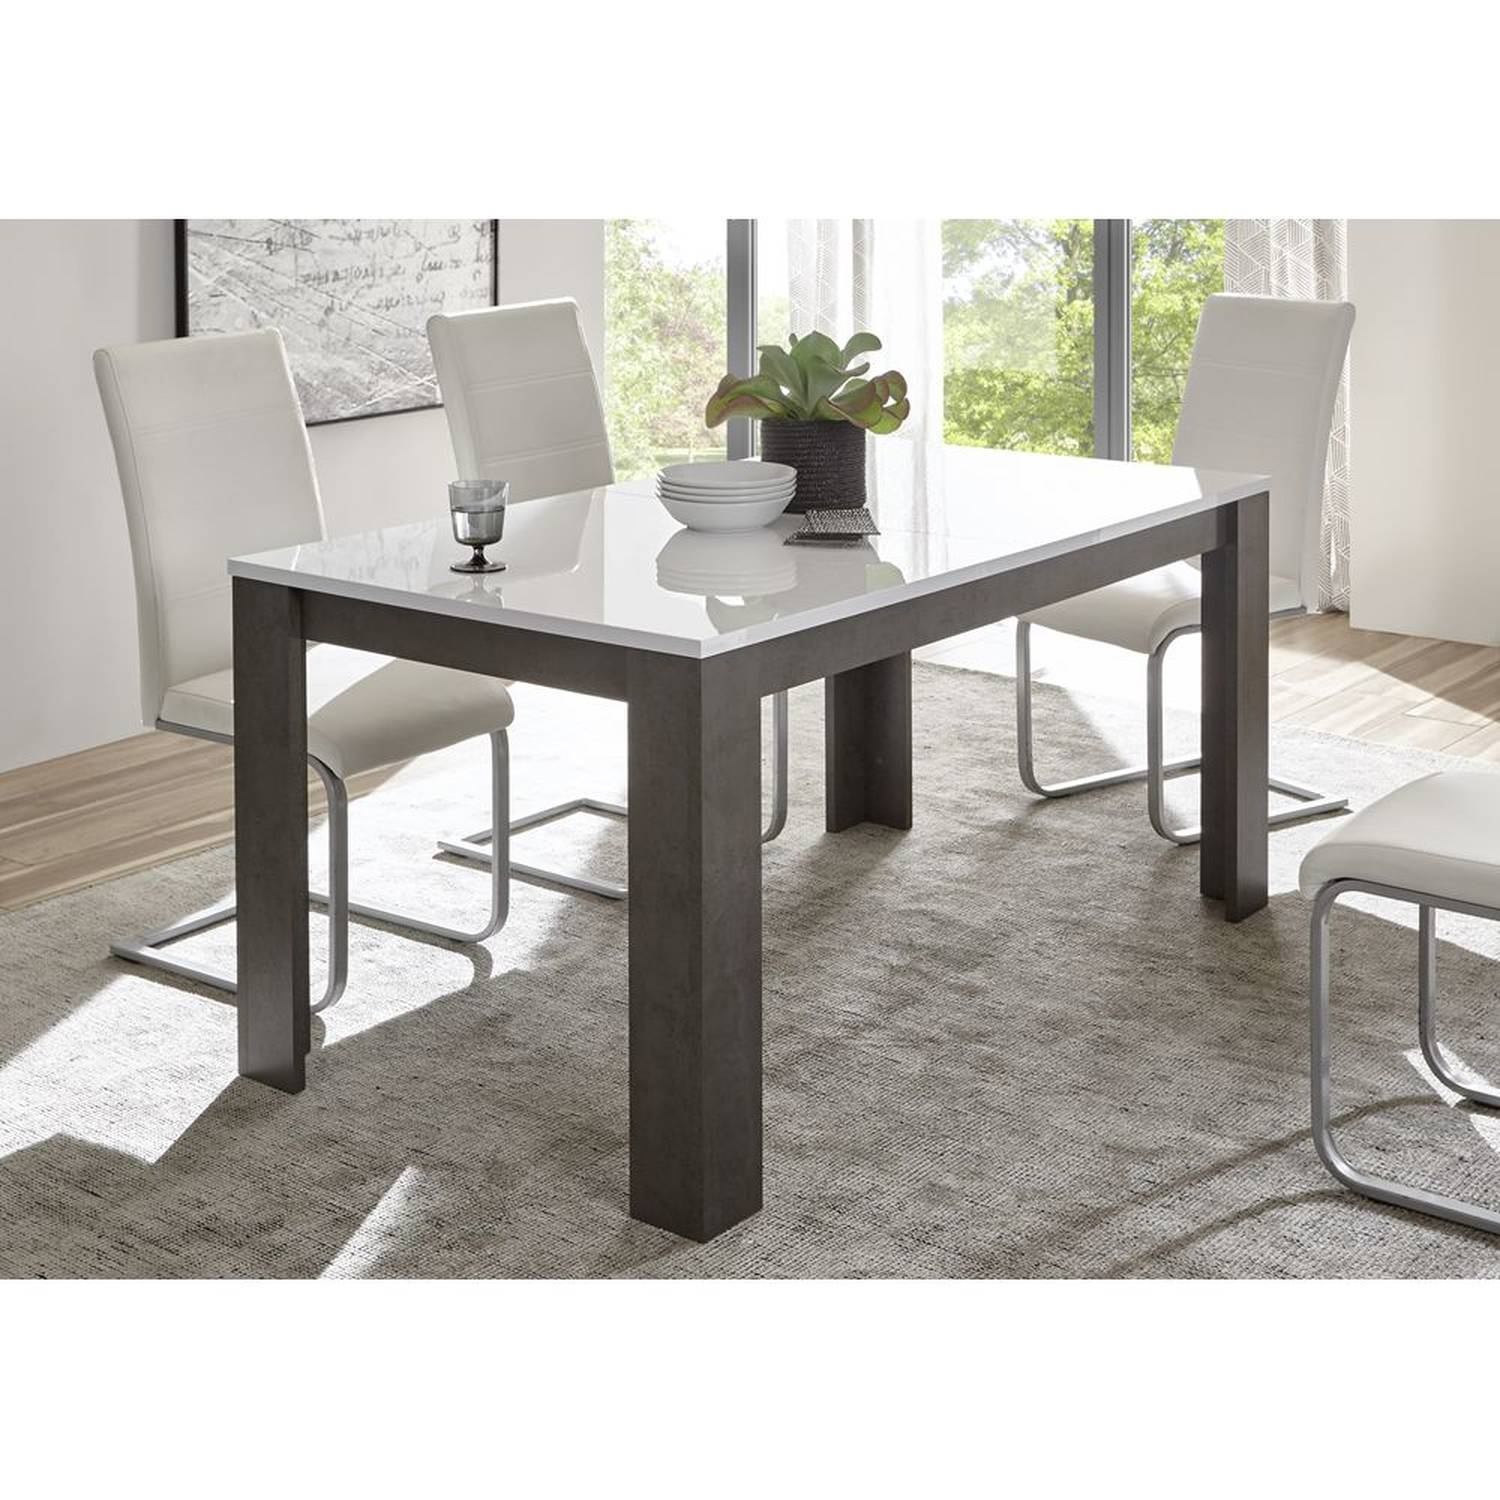 Dining Table Extendable To 200Cm Eton 61 In Concrete Look Dark & High Gloss White W/h/d: 158 200/75/88Cm Regarding Most Recently Released Black Wash Banks Extending Dining Tables (View 19 of 25)